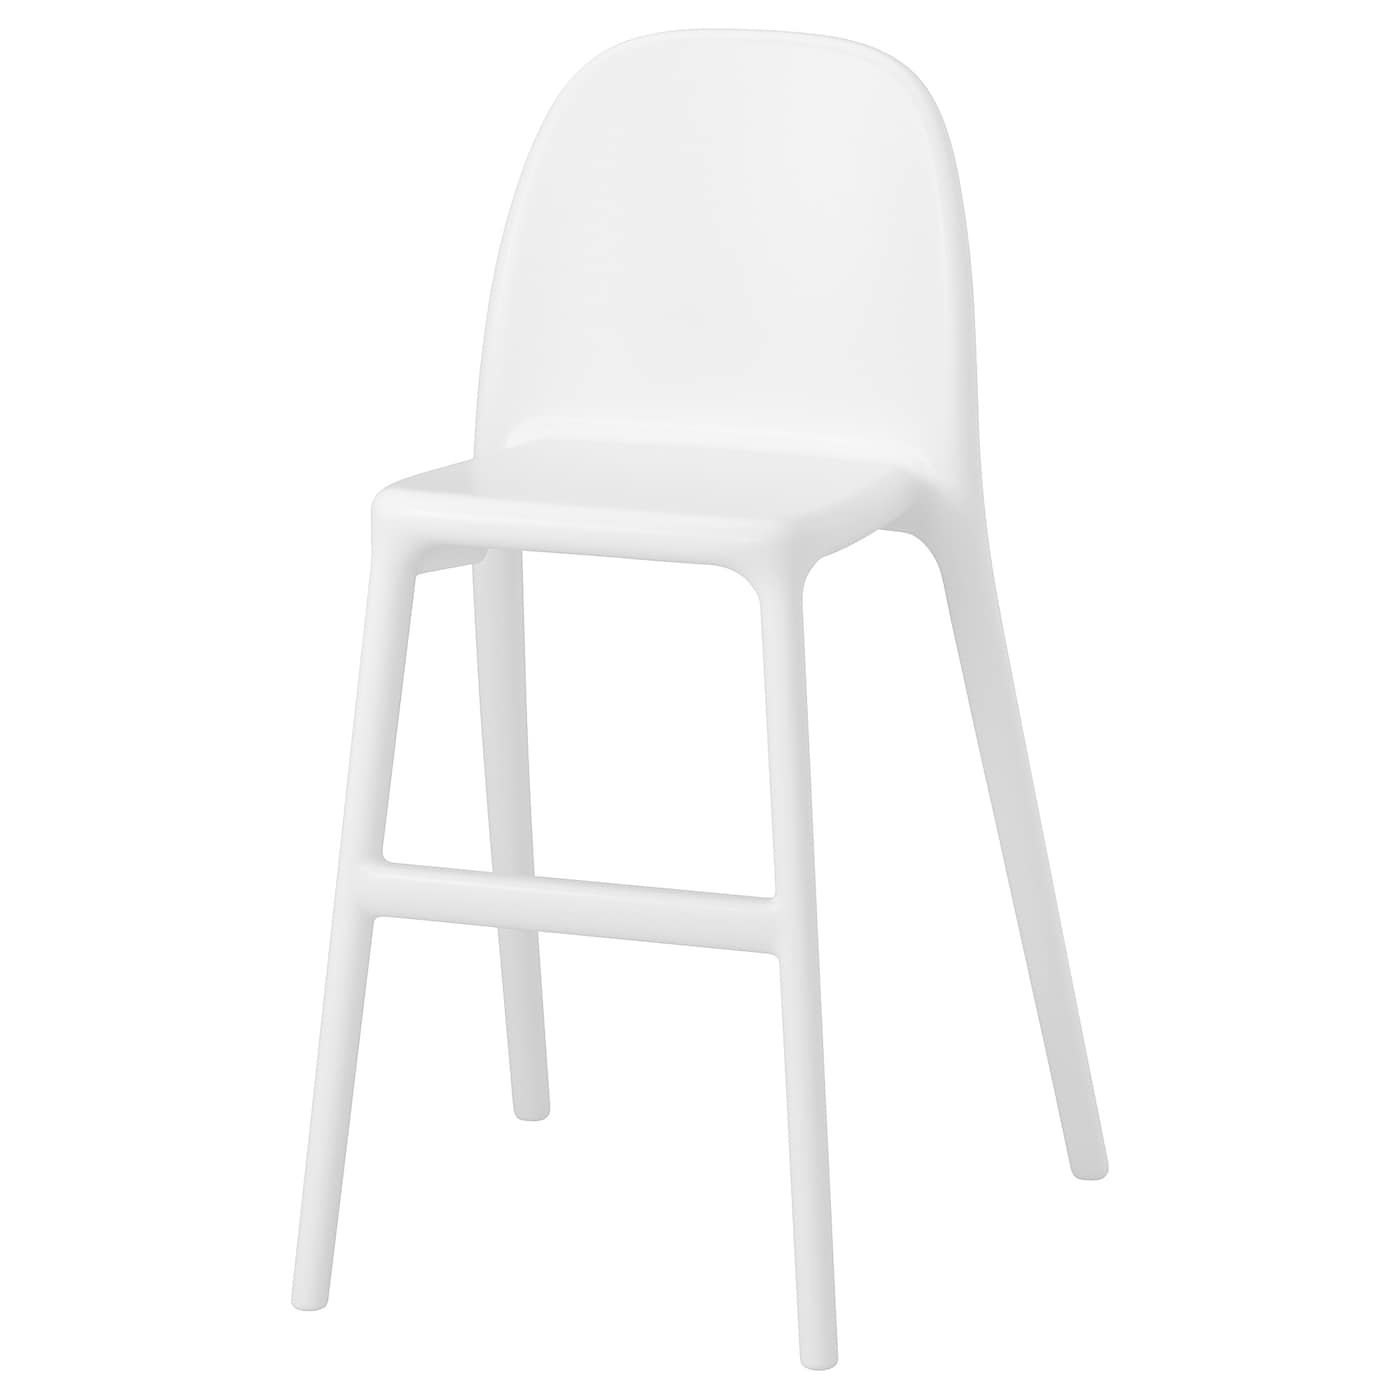 IKEA URBAN junior chair Gives the right seat height for the child at the dining table.